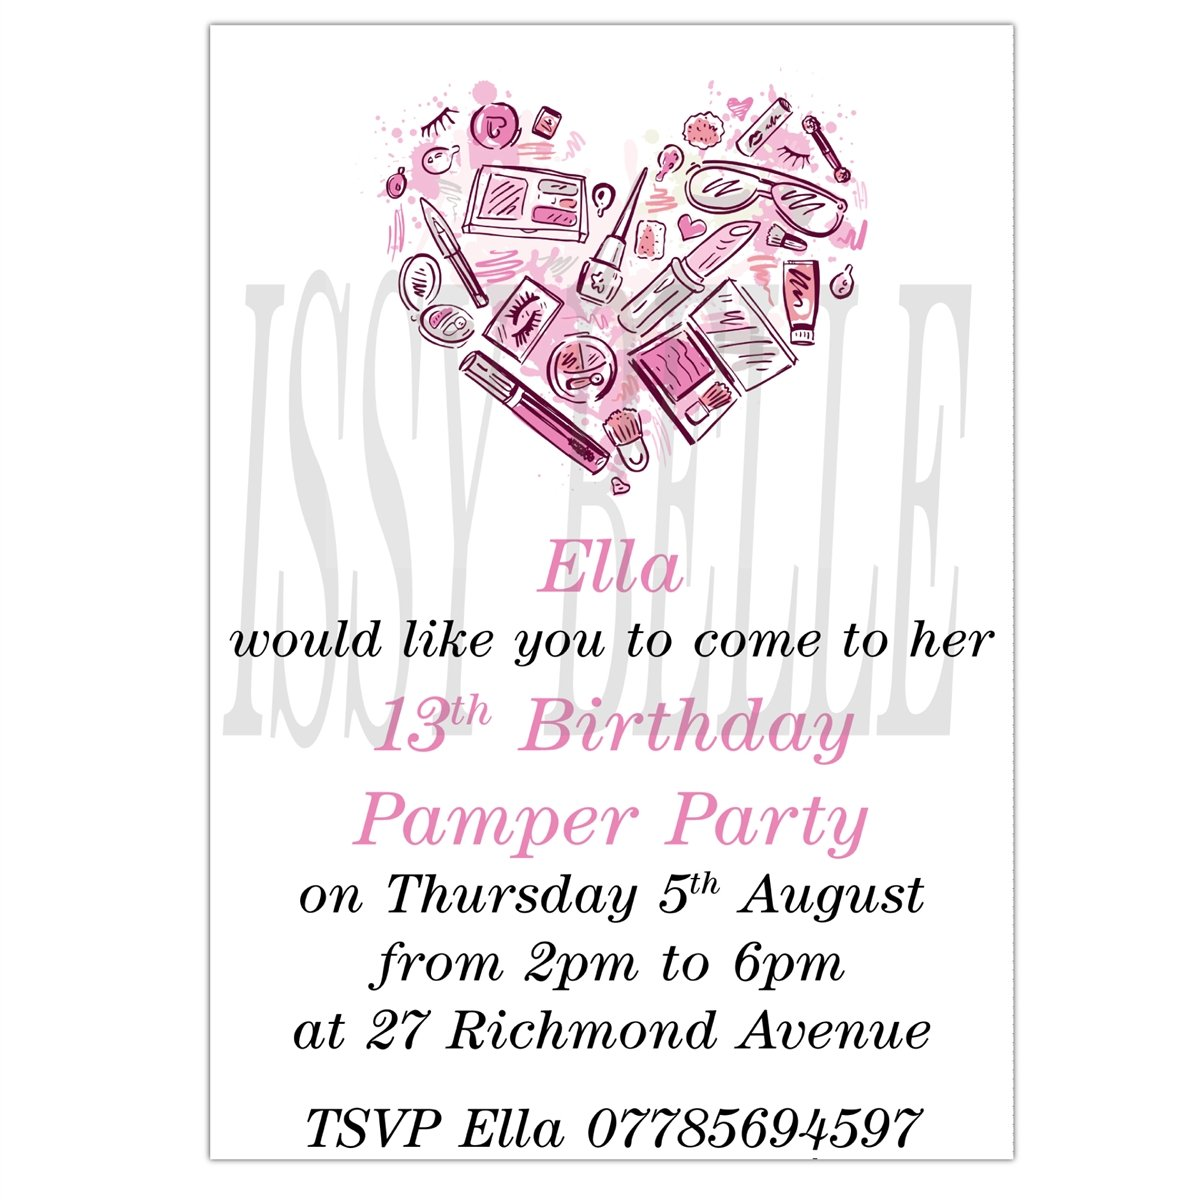 Personalised Invite Childrens Birthday Party Invitations Girl ...